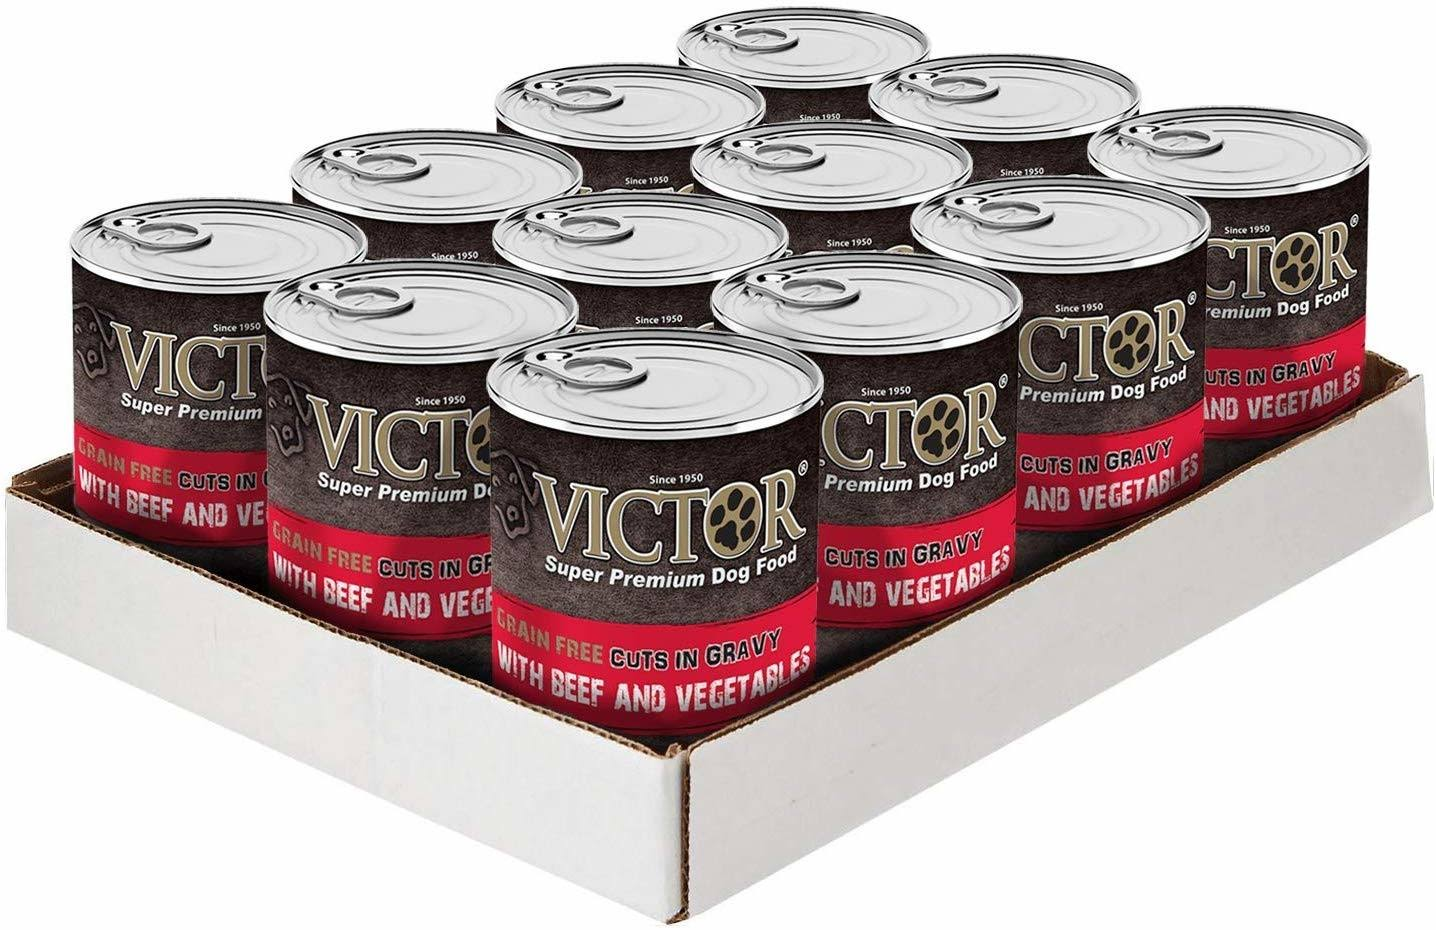 Victor Grain Free Beef & Vegetable in Gravy Canned Dog Food